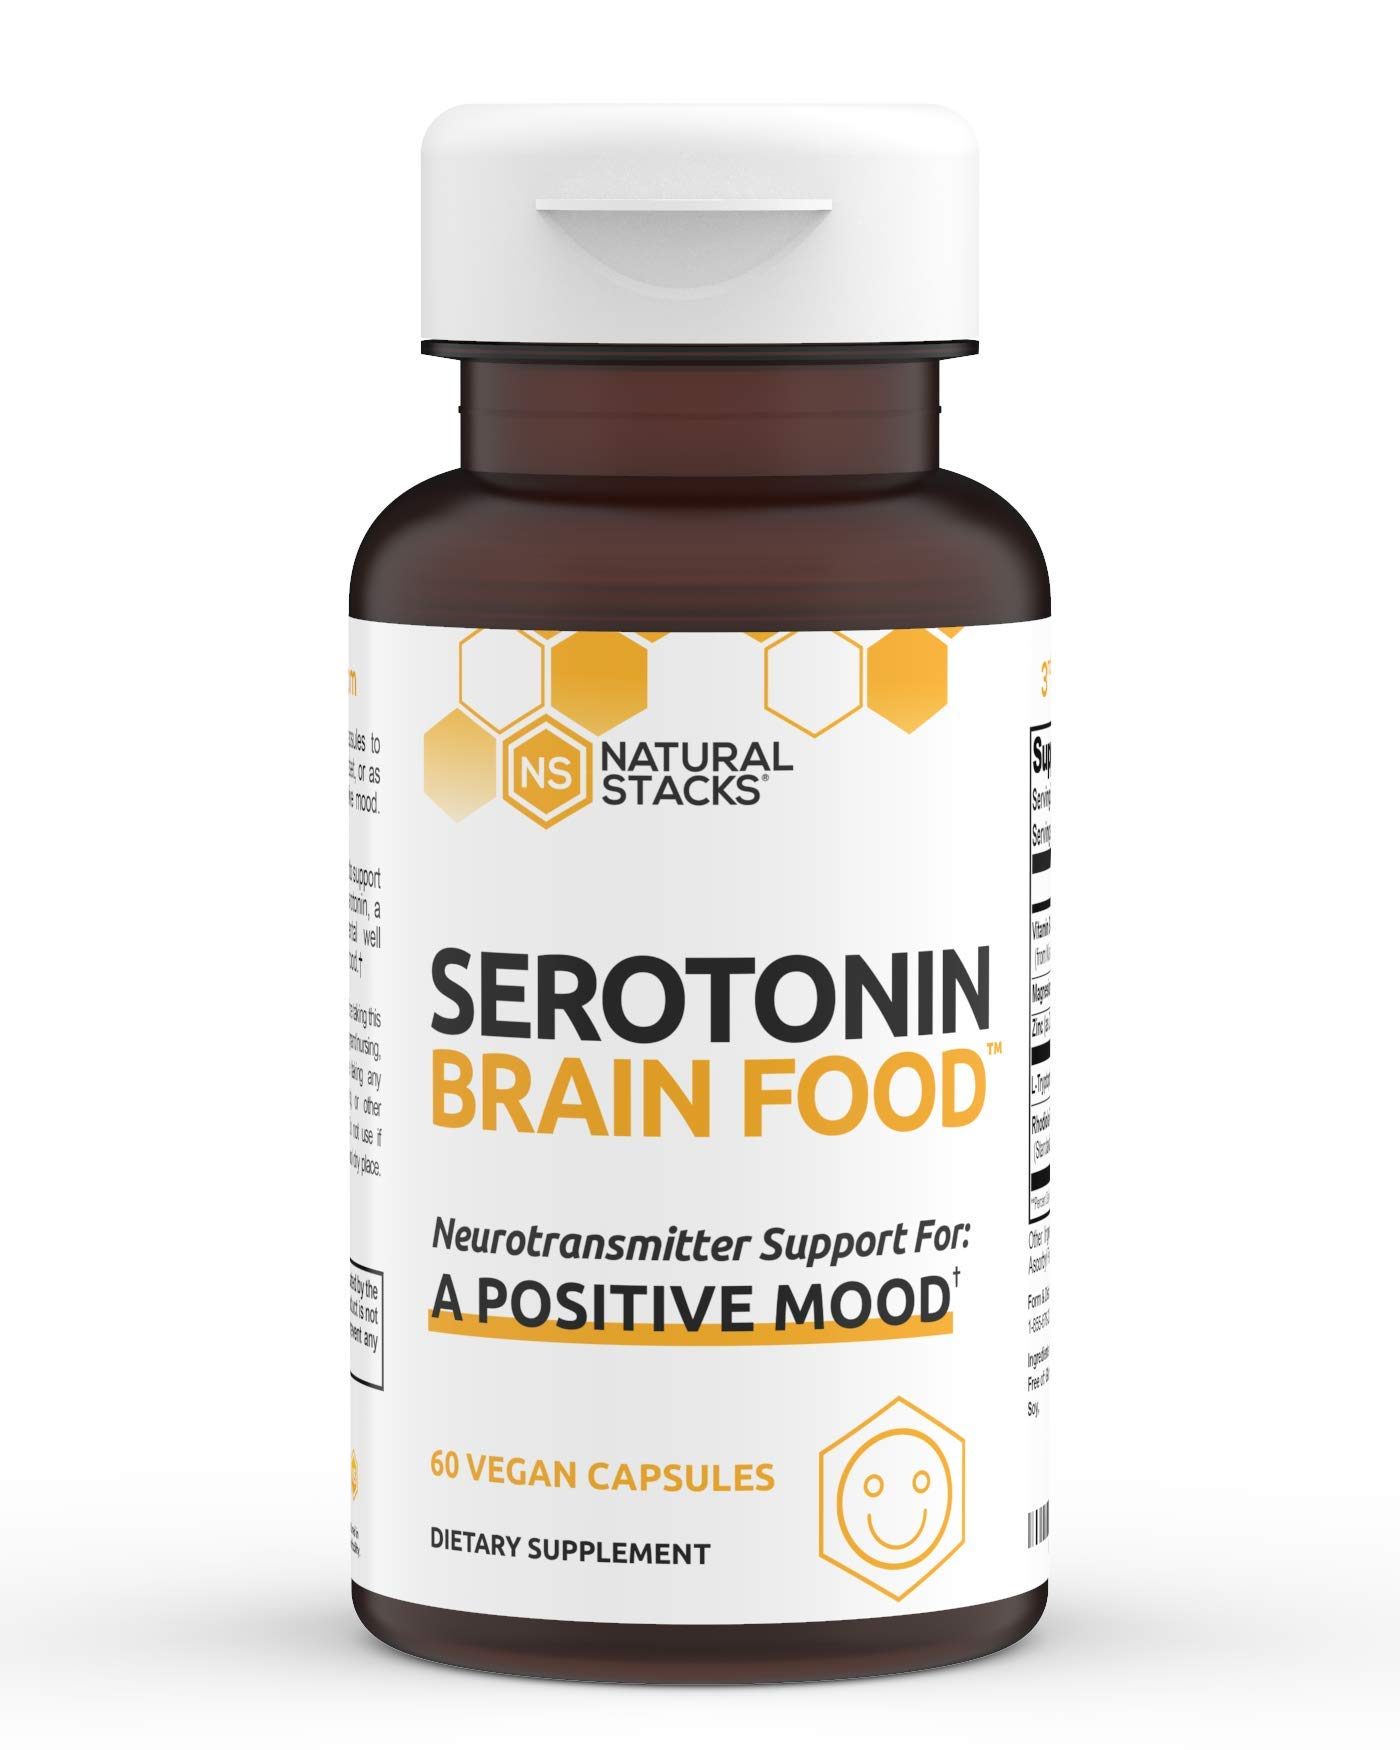 Natural Stacks Serotonin Supplement - Mood Boost and Brain Health Supplement with Rhodiola Rosea, L Tryptophan - Serotonin Production - Mood and Natural Energy Supplement (60ct)